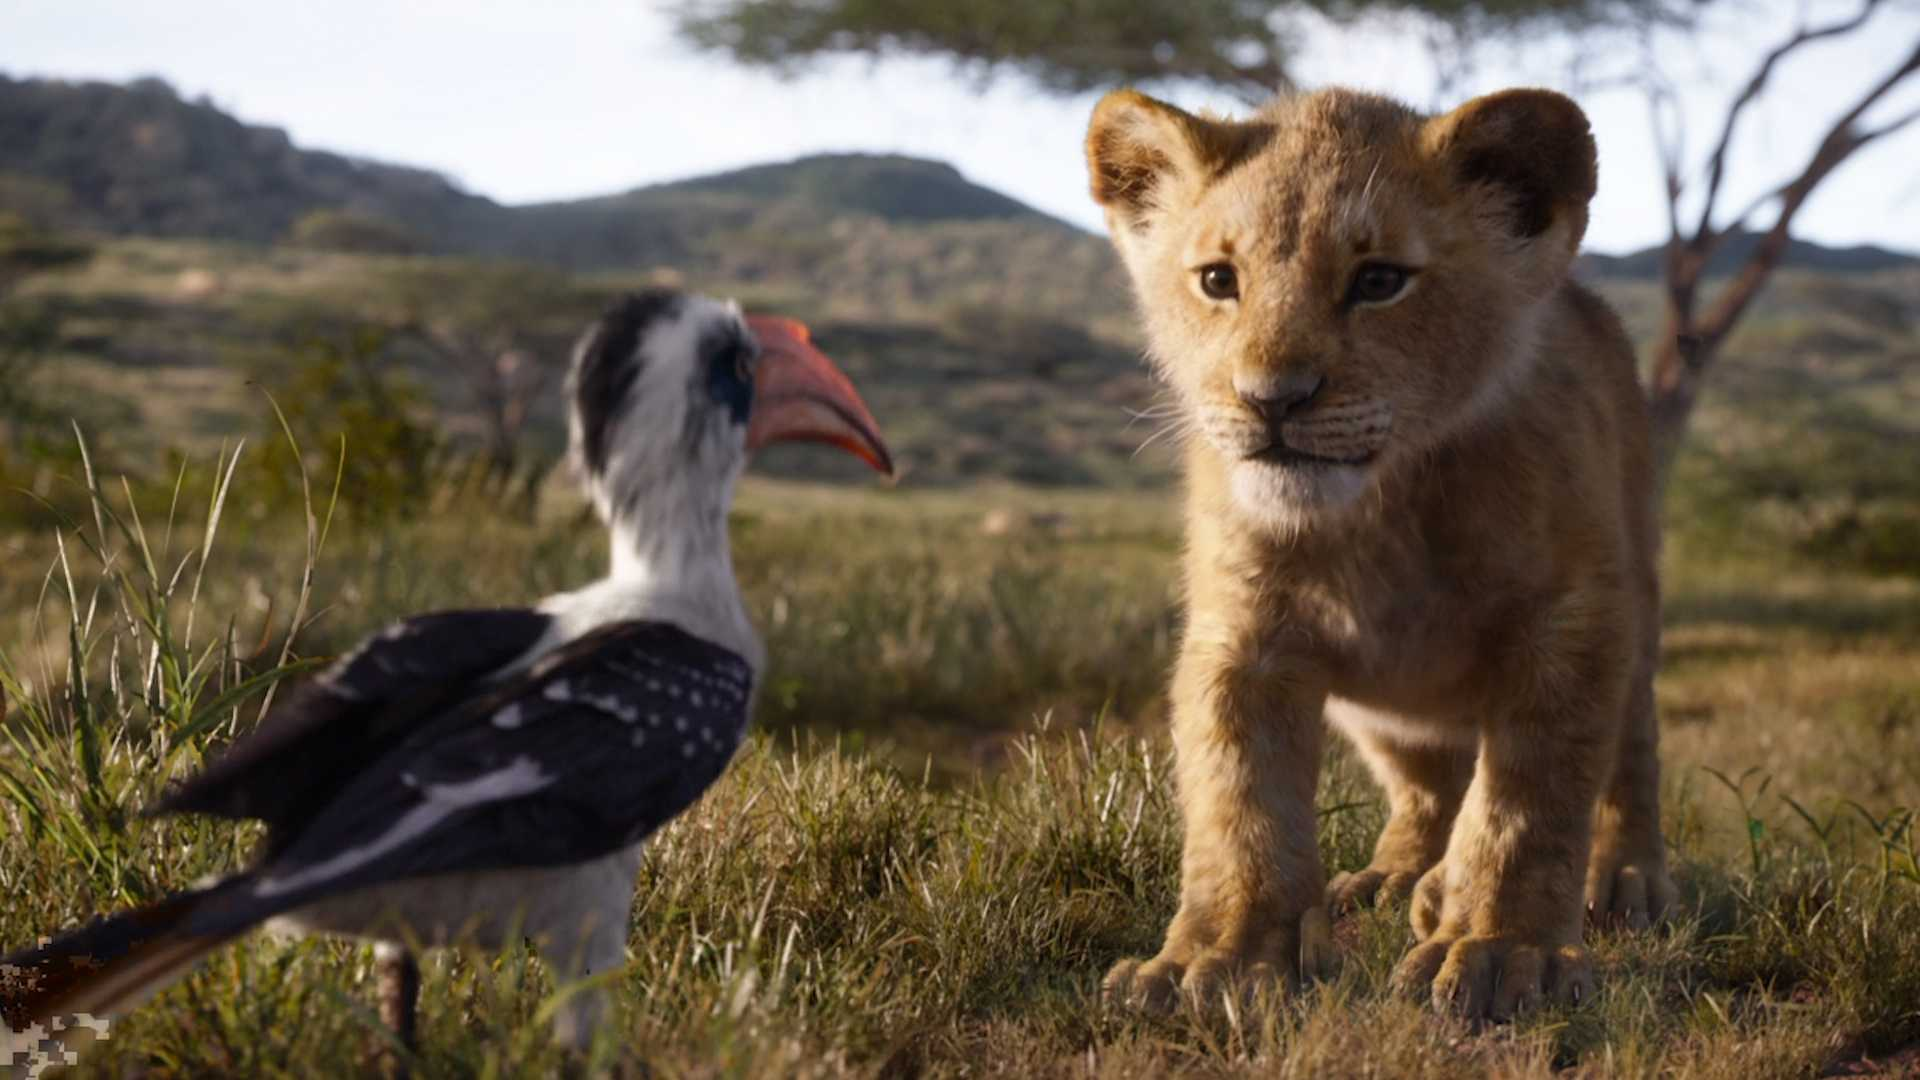 Source: The Lion King Trailer